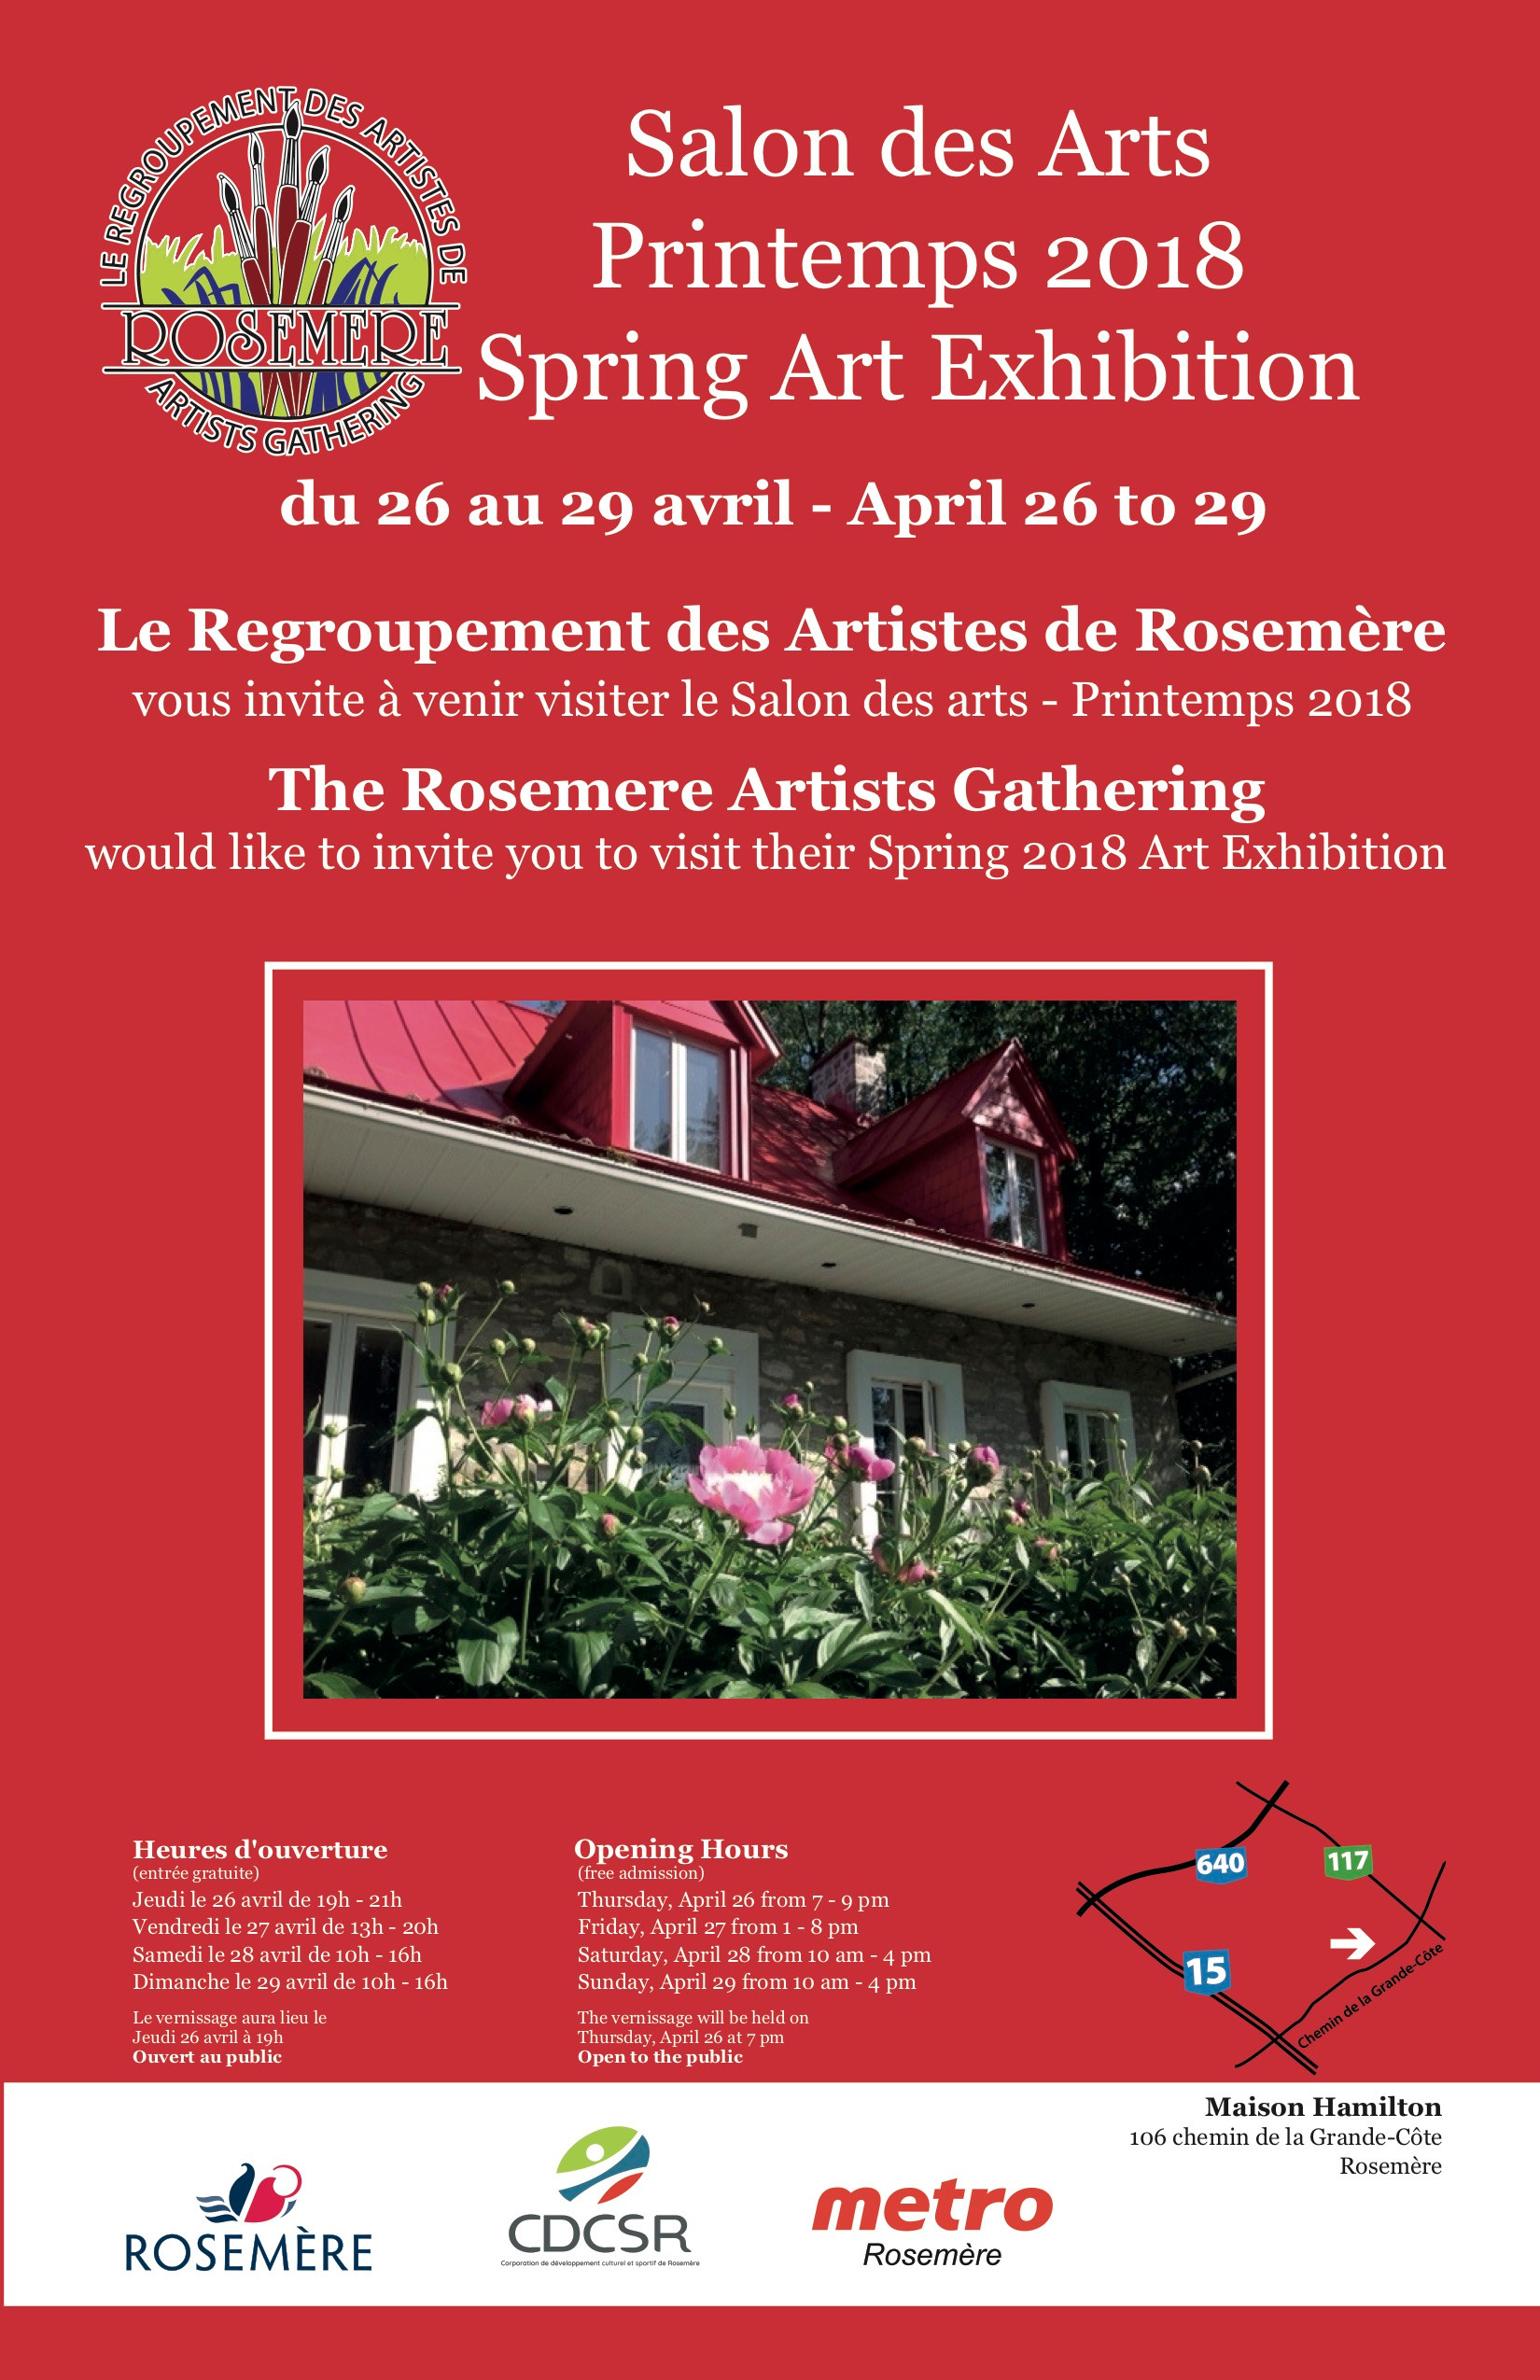 Salon des arts du printemps 2018